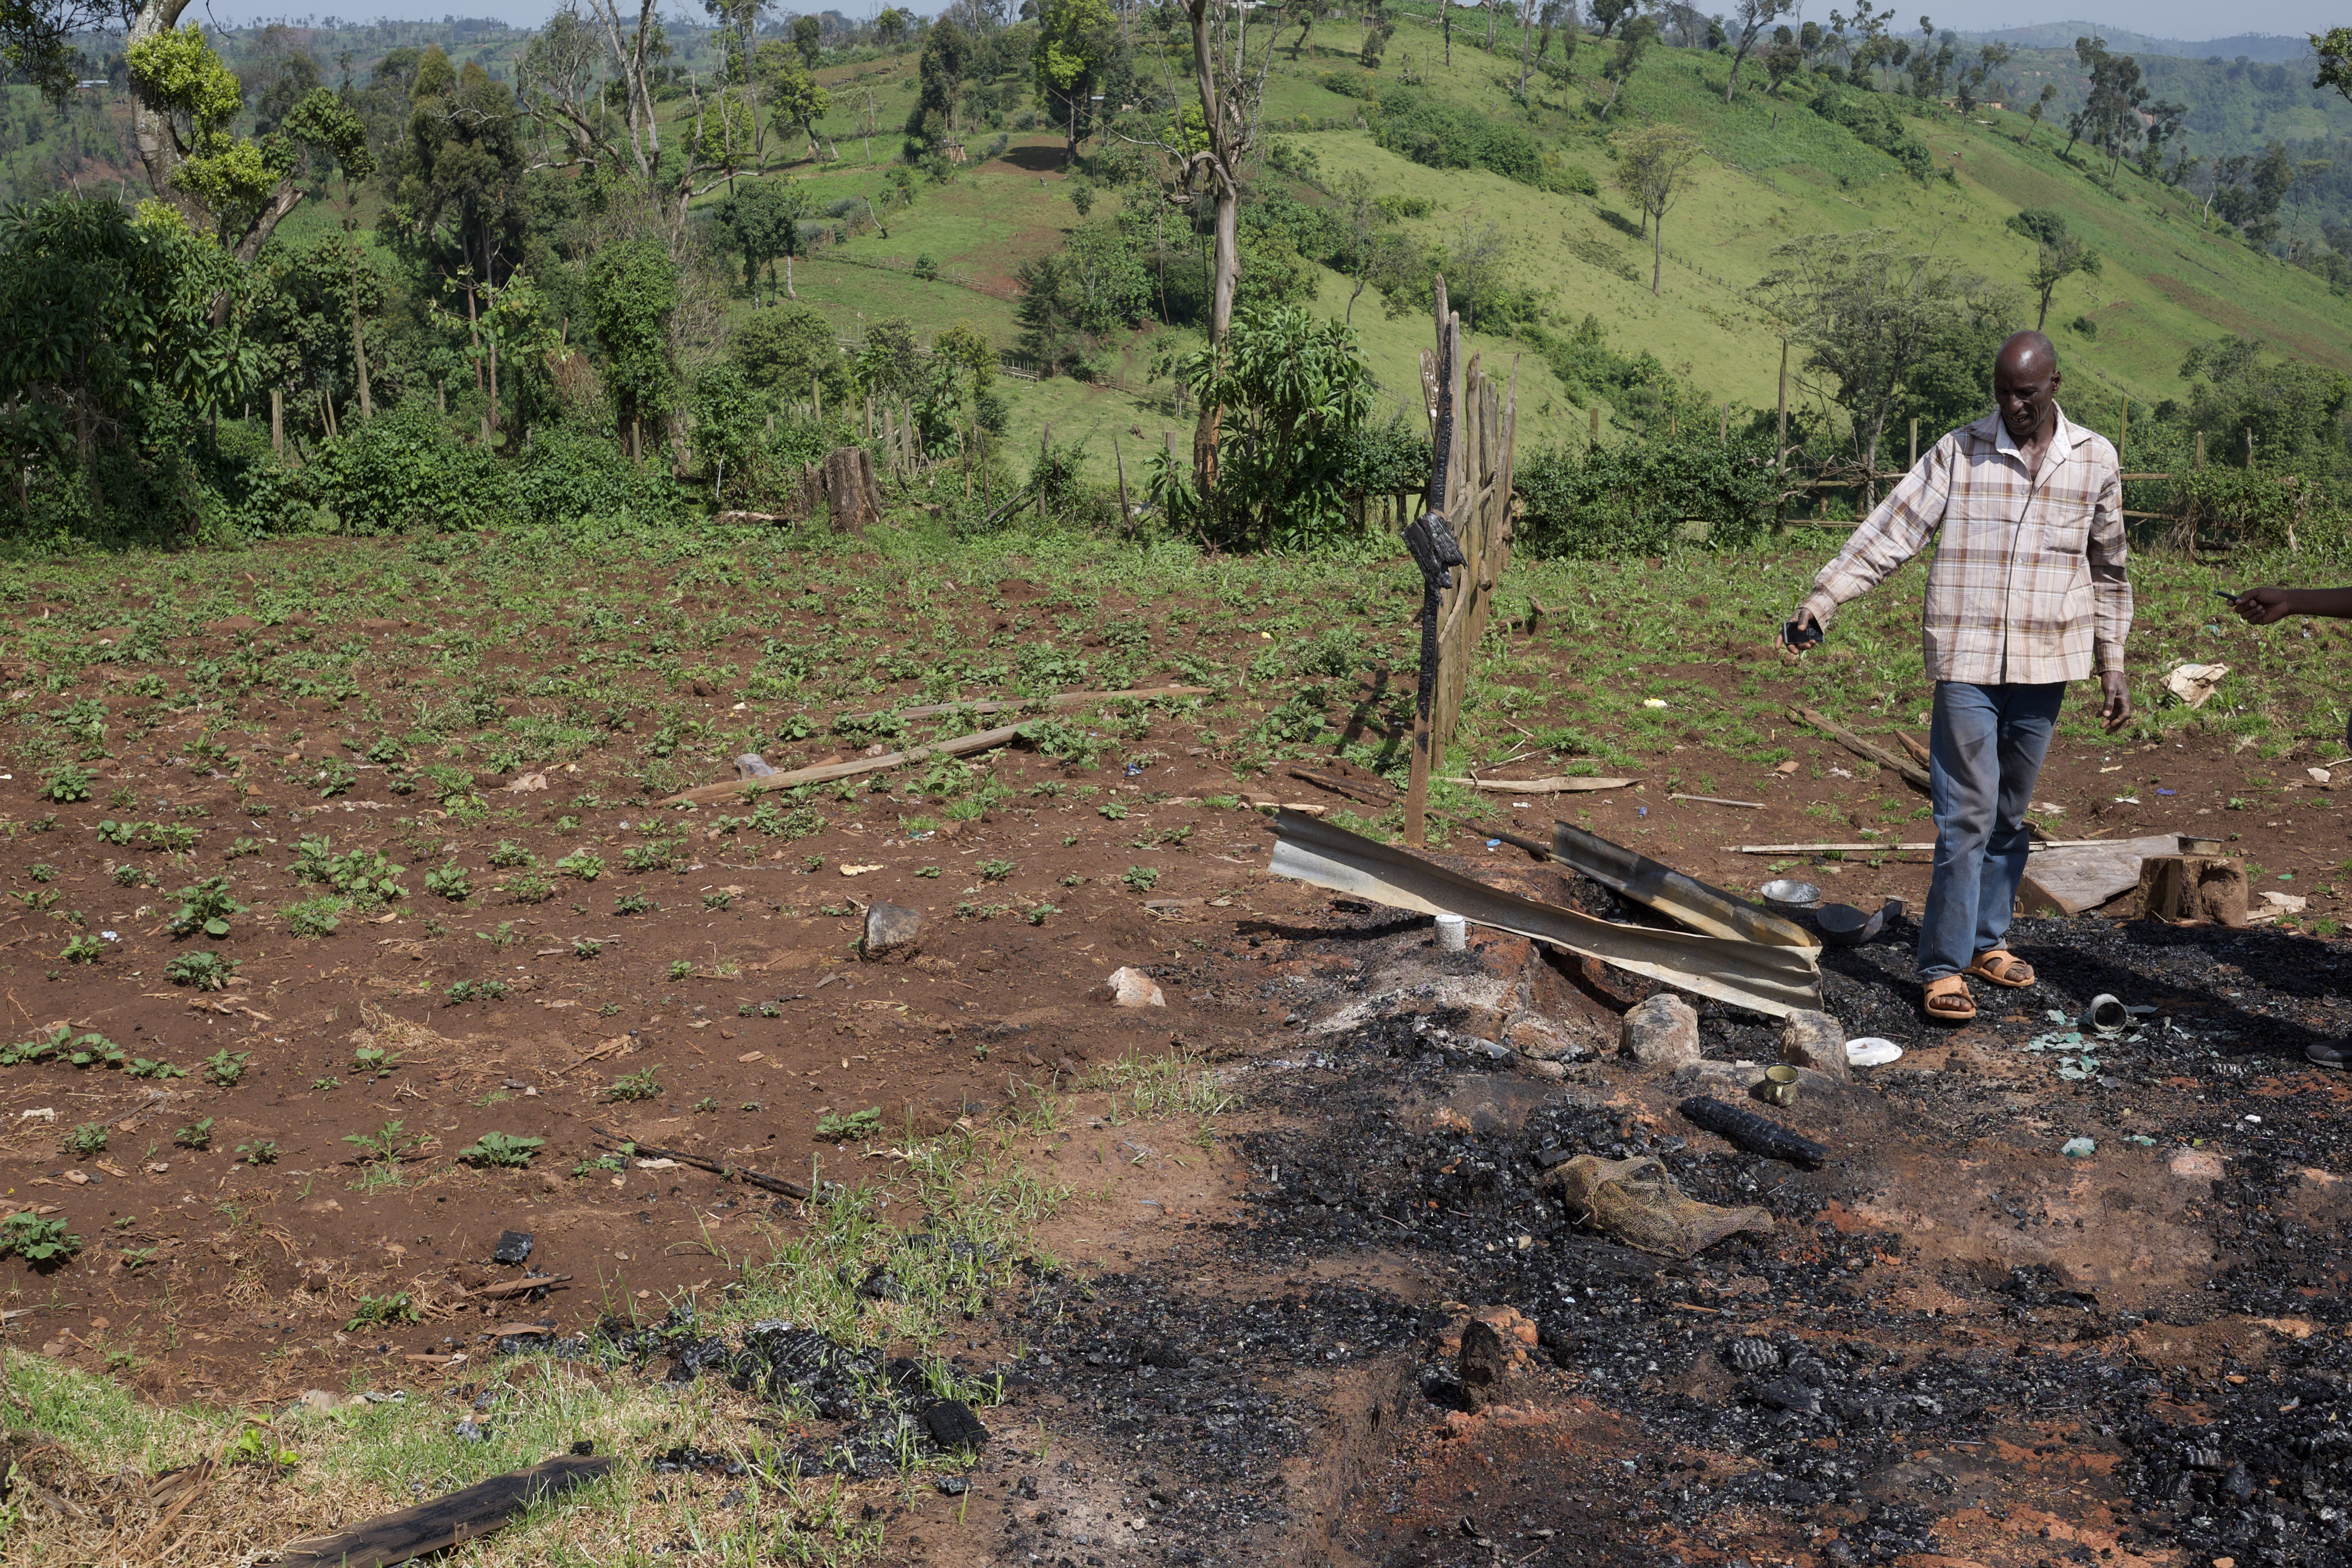 Simon Towett lived in the Maasai Mau Forest for 30 years, but when police arrived, they burned down his house and evicted him from the forest.